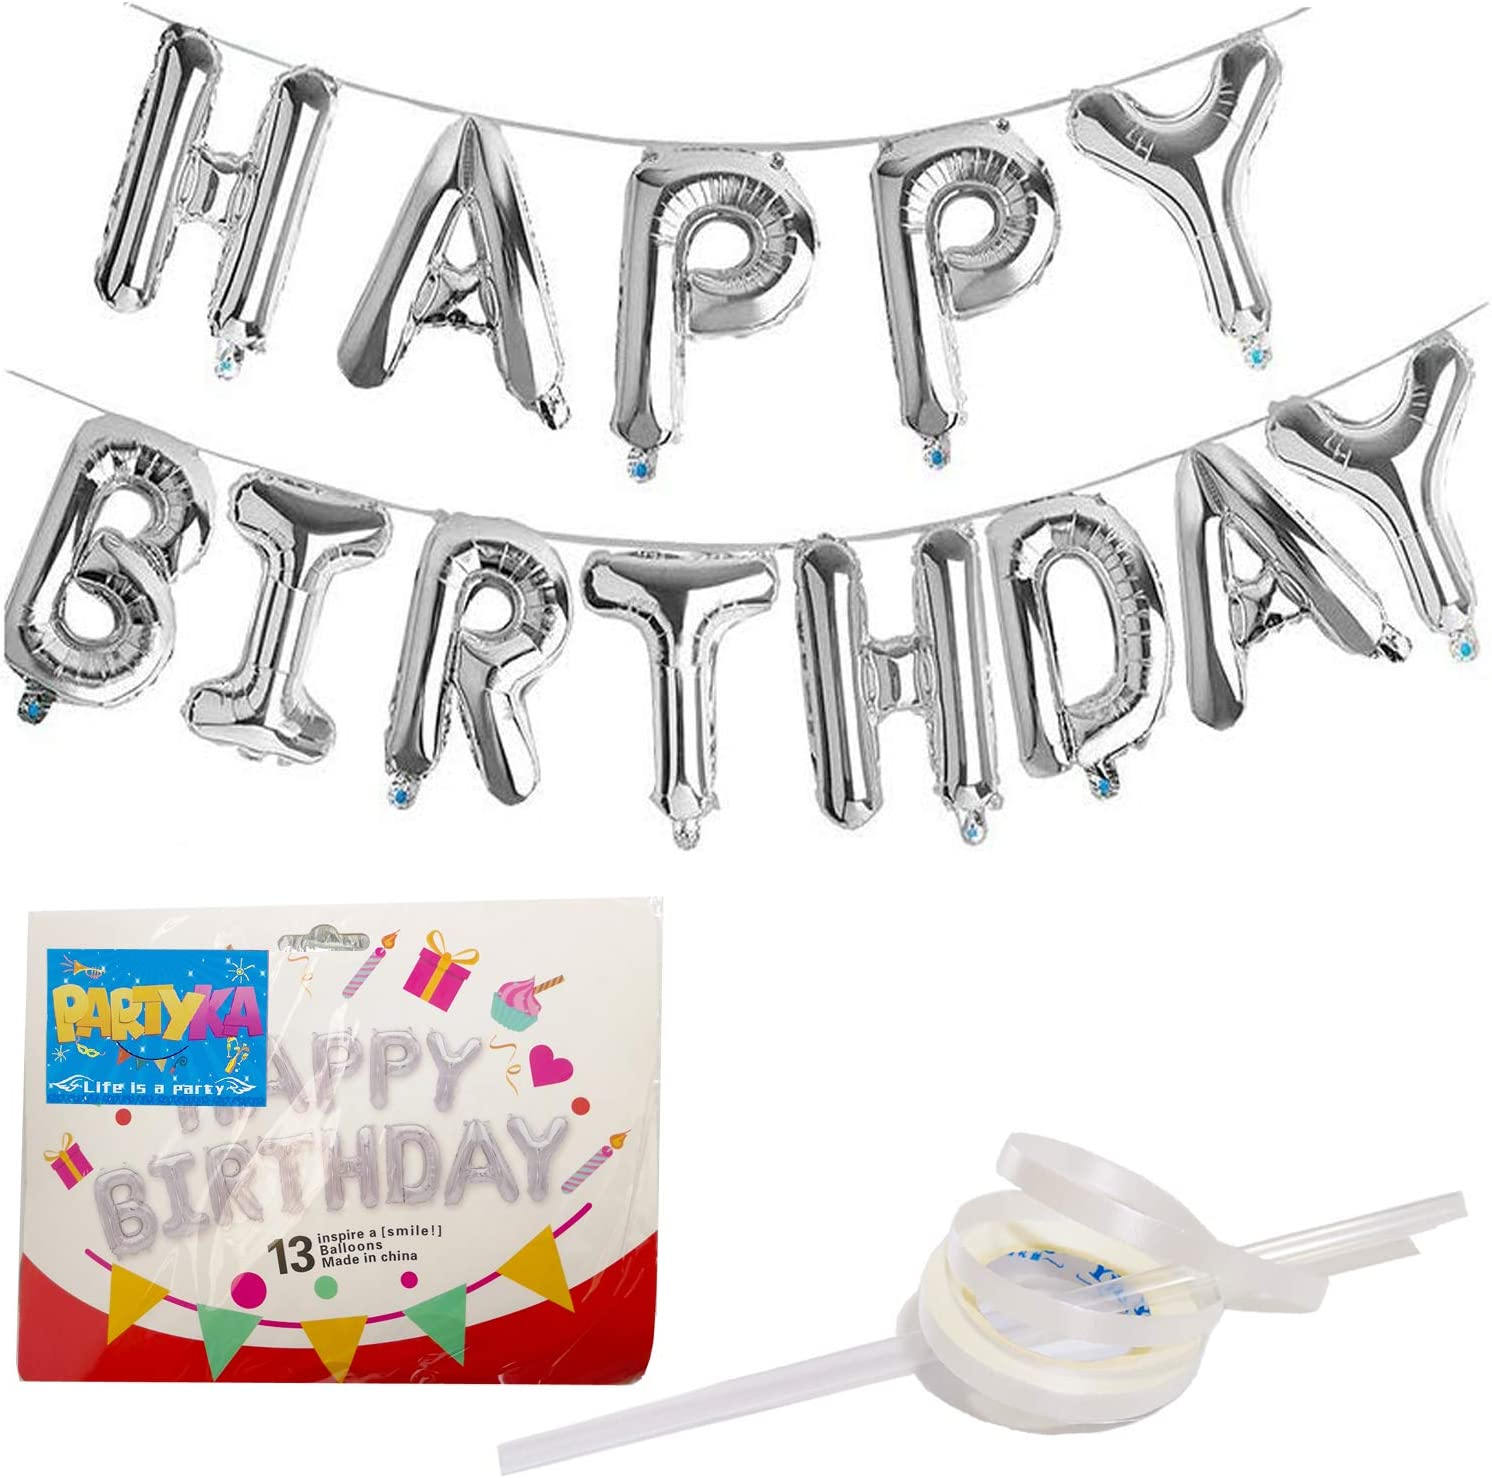 16th Happy Birthday Party Decora Banner Bunting Helium Balloons Self inflating